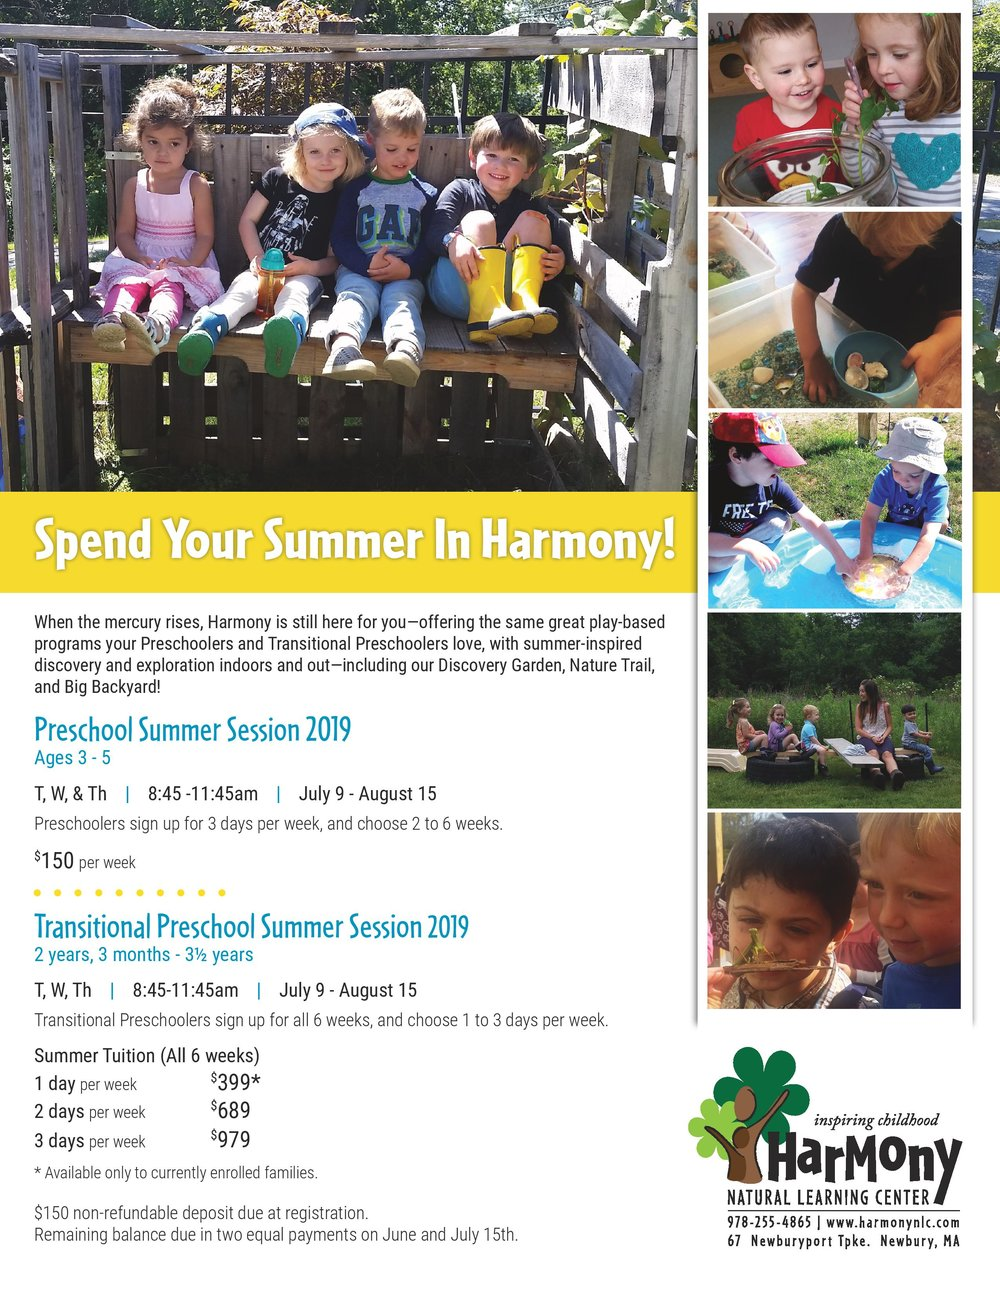 Newburyport Summer Camp 2019 Harmony Natural Learning Center Summer Sessions 2019.jpg